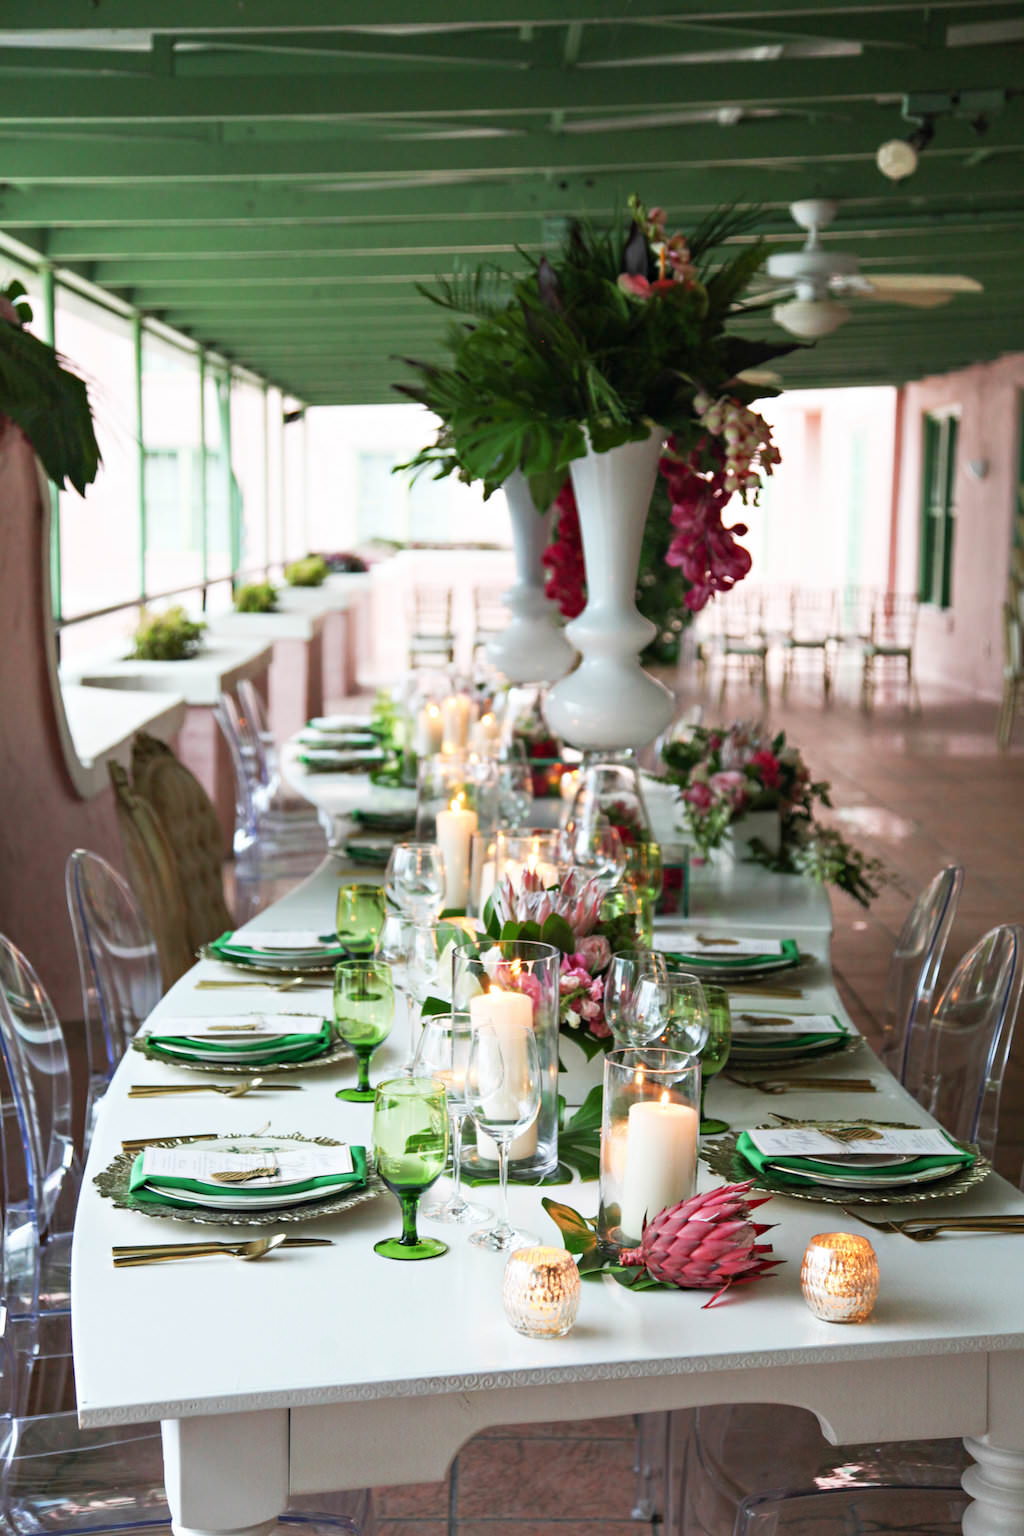 Outdoor Hotel Courtyard Old World Havana Inspired Wedding Reception with Long White Vintage Feasting Table with Clear Acrylic Oval Backed Chairs, Extra Tall Pink Orchid and Fern Greenery with Palm Fronds Centerpiece in White Vase, Low Centerpiece with Monsterra Palm Leaves and Florals in White Boxes, Colored Drinking Glasses and Green Satin Napkins, and Pillar Candles in Hurricane Votives   Tampa Bay Wedding Rentals A Chair Affair   St Pete Venue Vinoy Renaissance